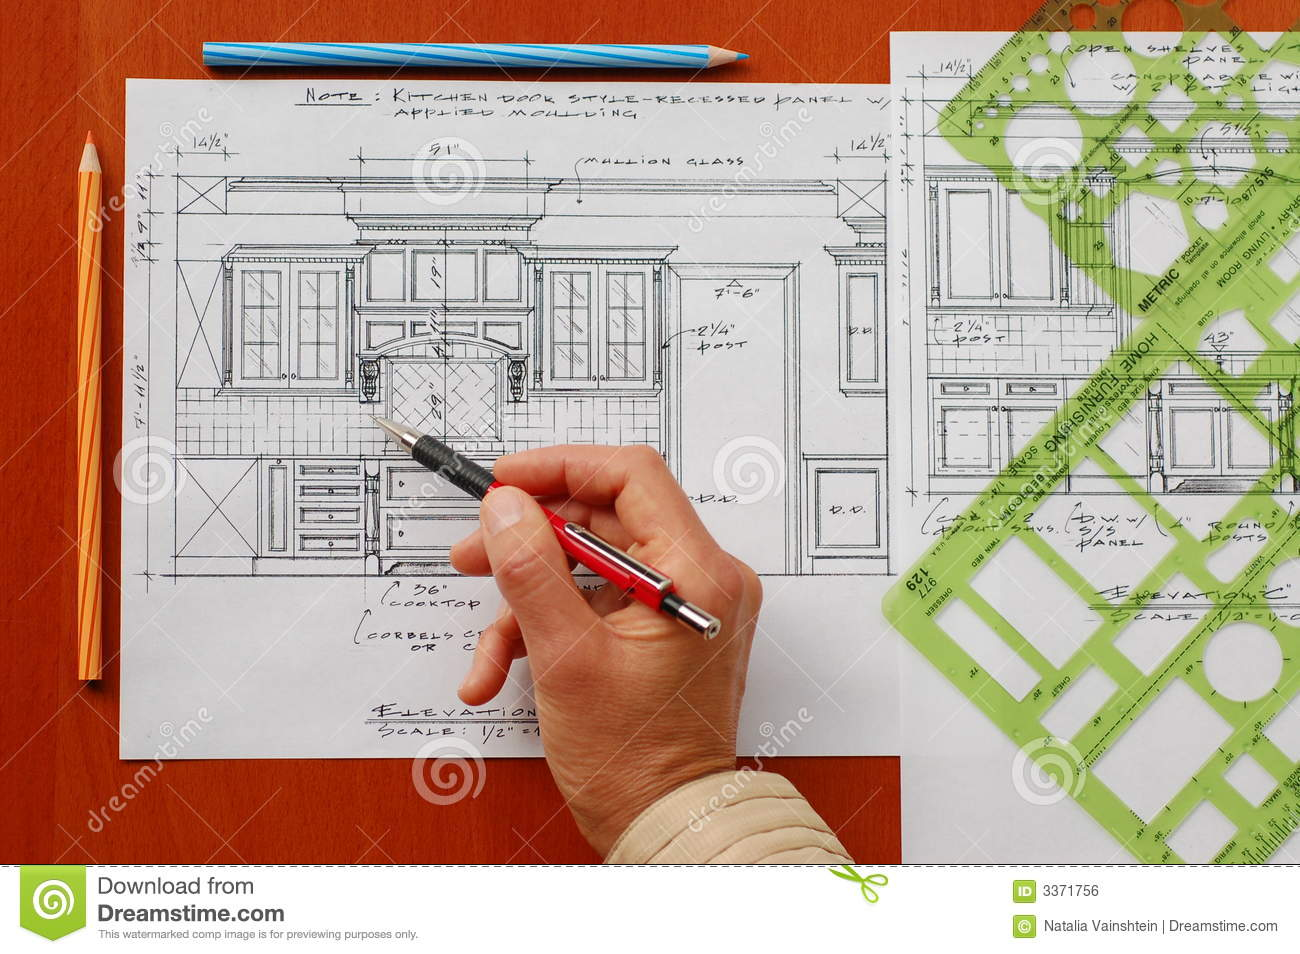 Interior design drawings stock photo image of building for Interior design plan drawings